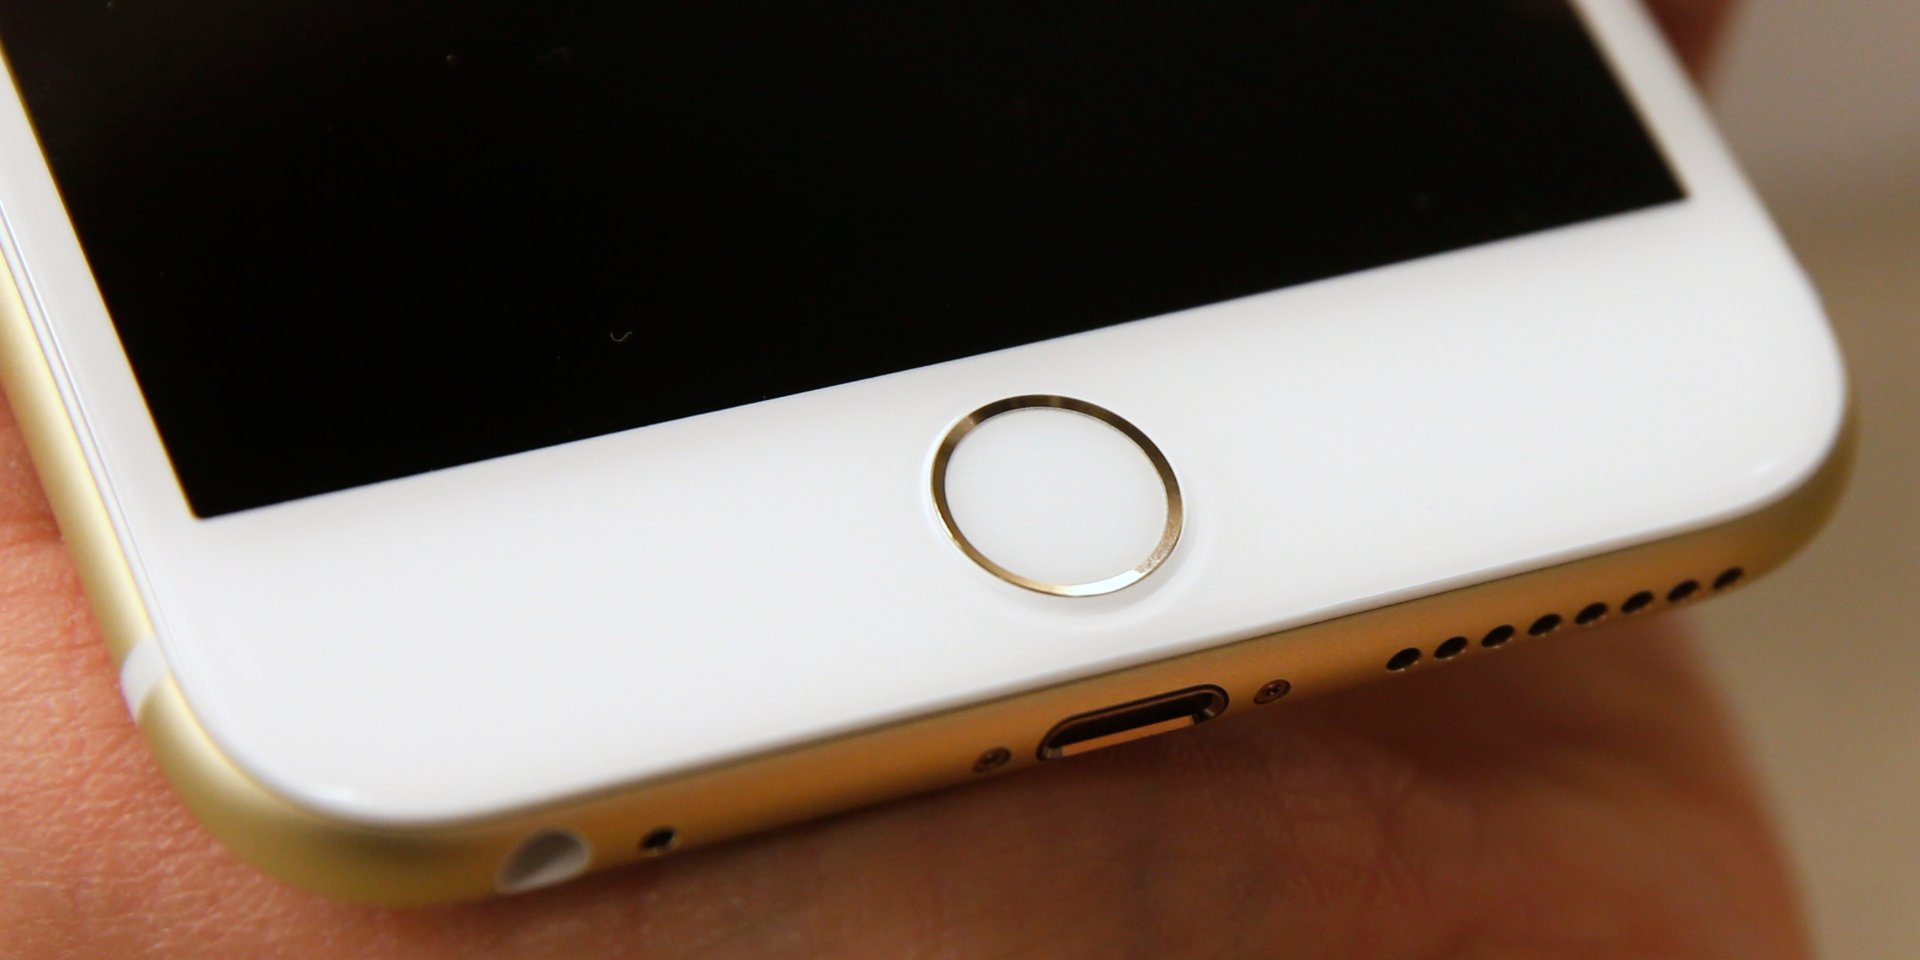 Apple is working on an iPhone with a fingerprint sensor behind the display, according to a new report — and it could arrive as soon as next year (AAPL)